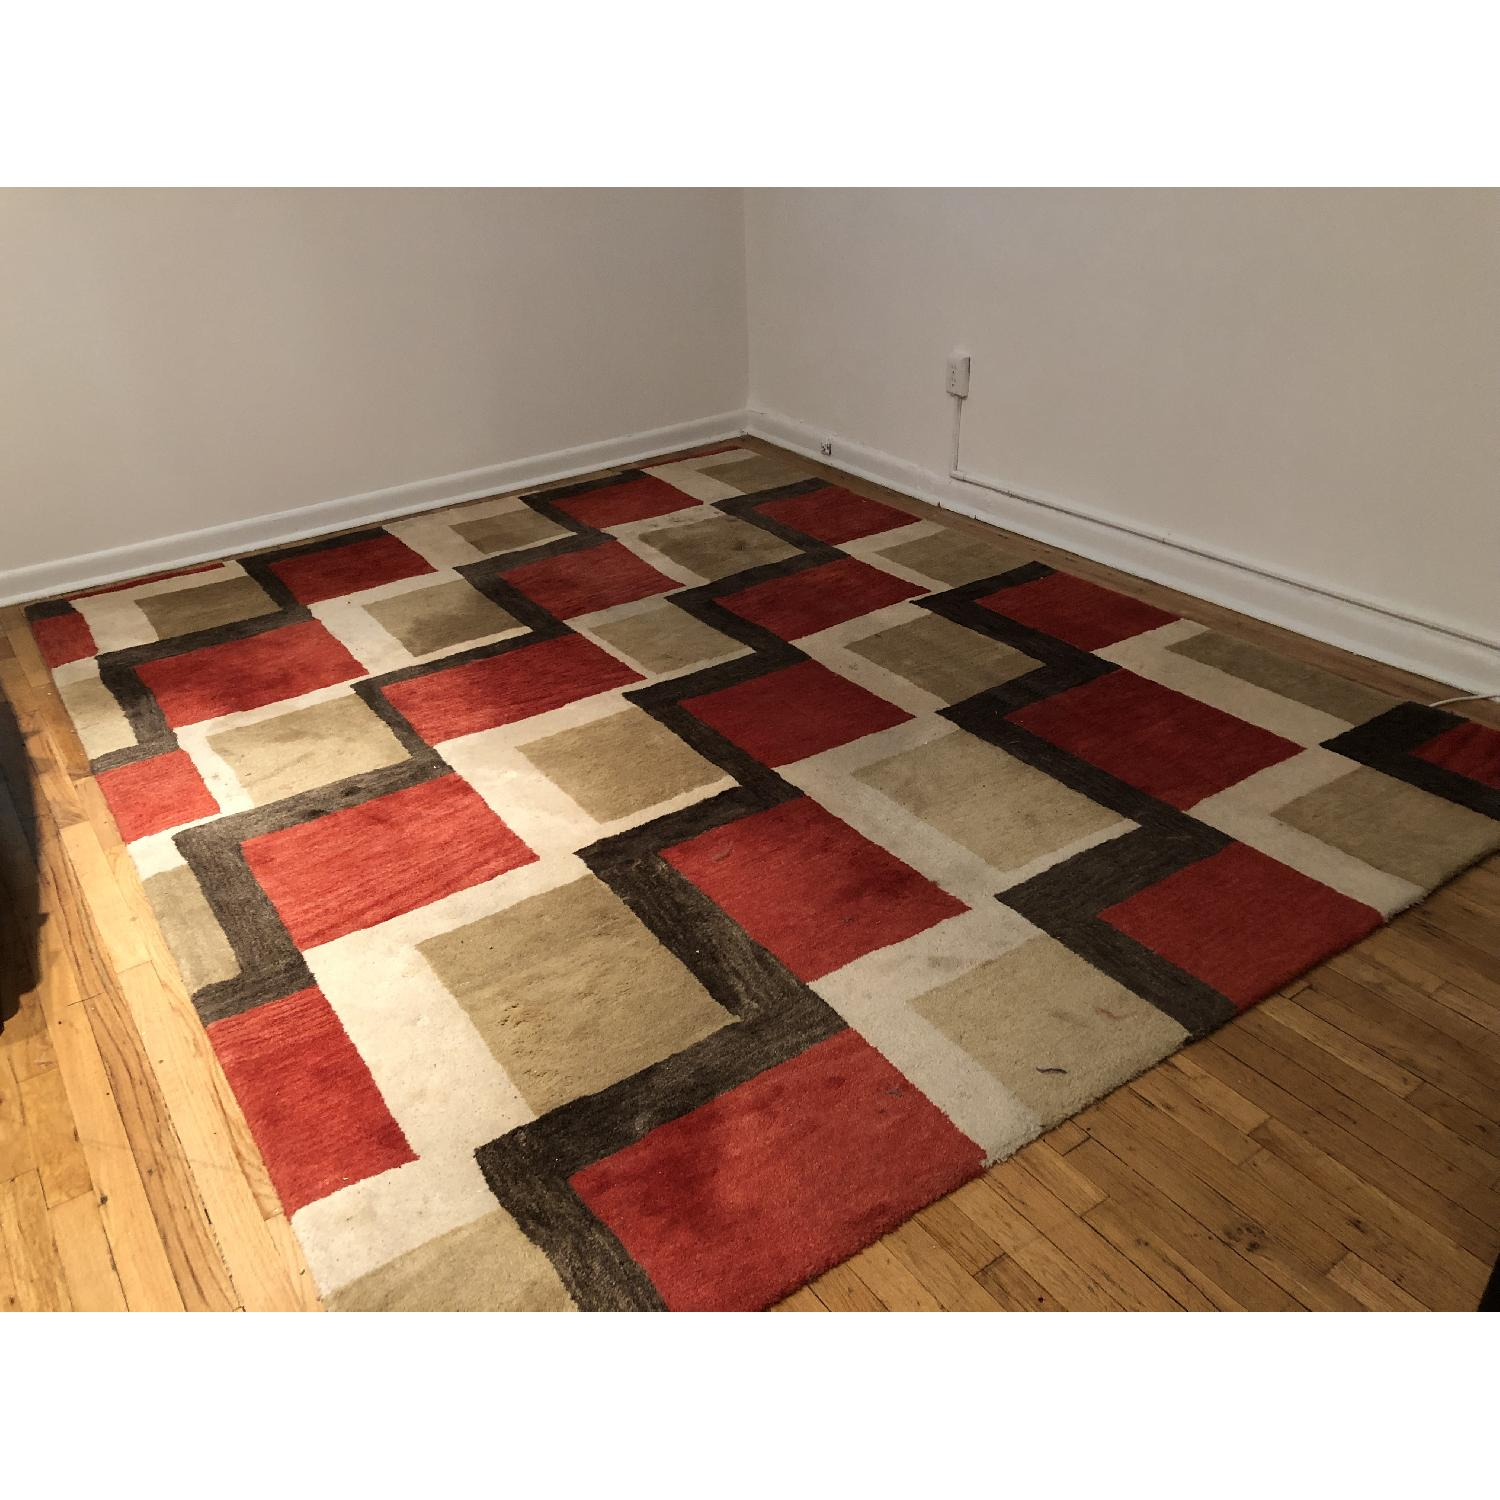 Crate & Barrel Area Rug - image-1